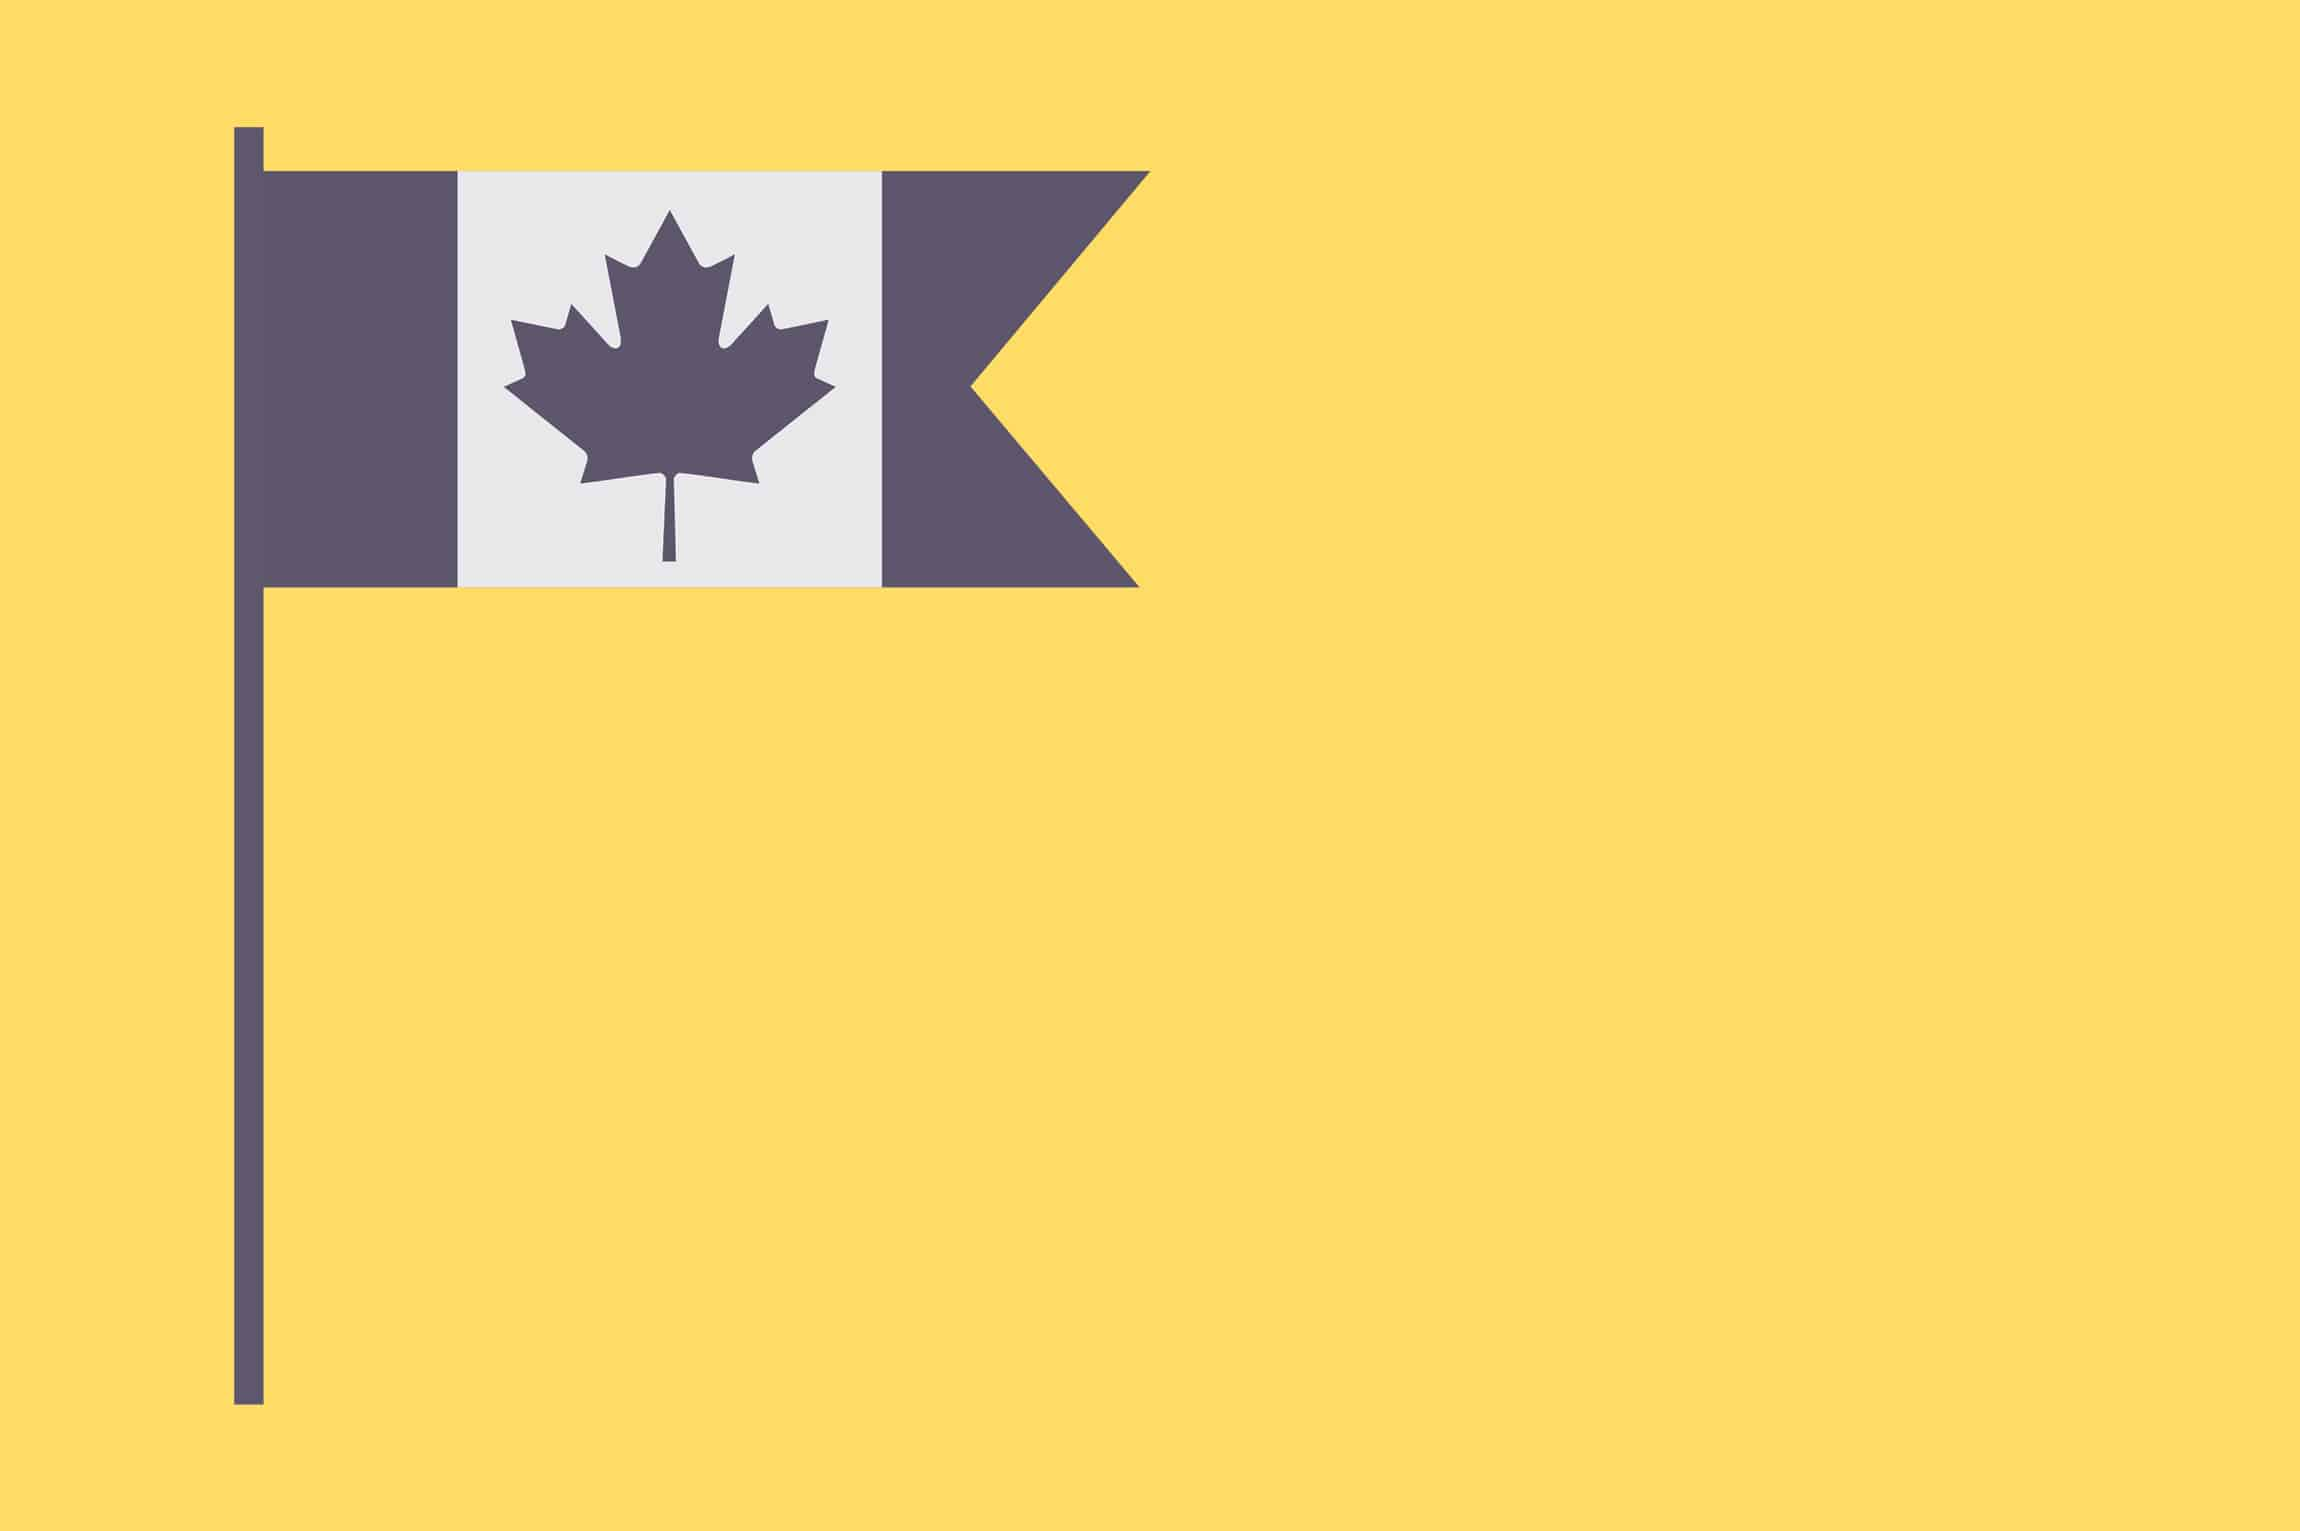 canadian flag - yellow